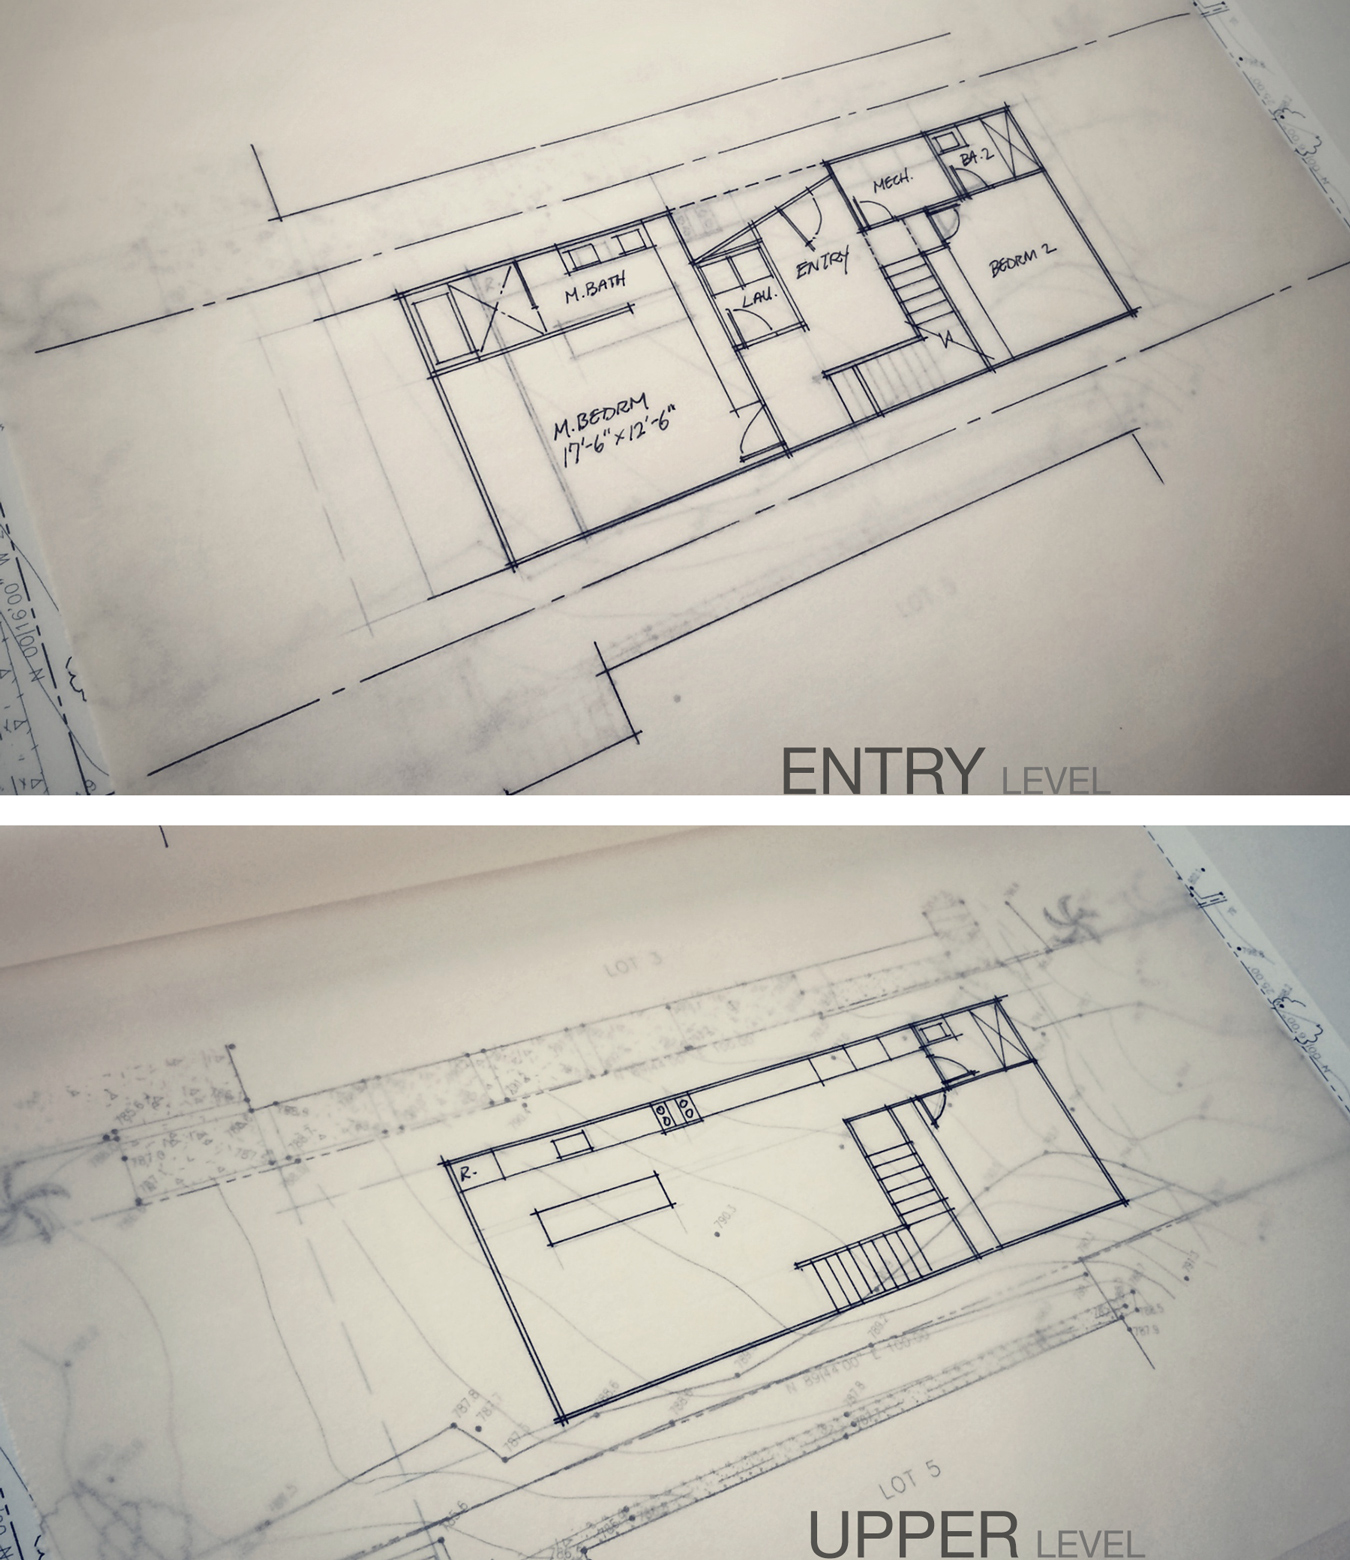 schematic floor plans / arch beach heights